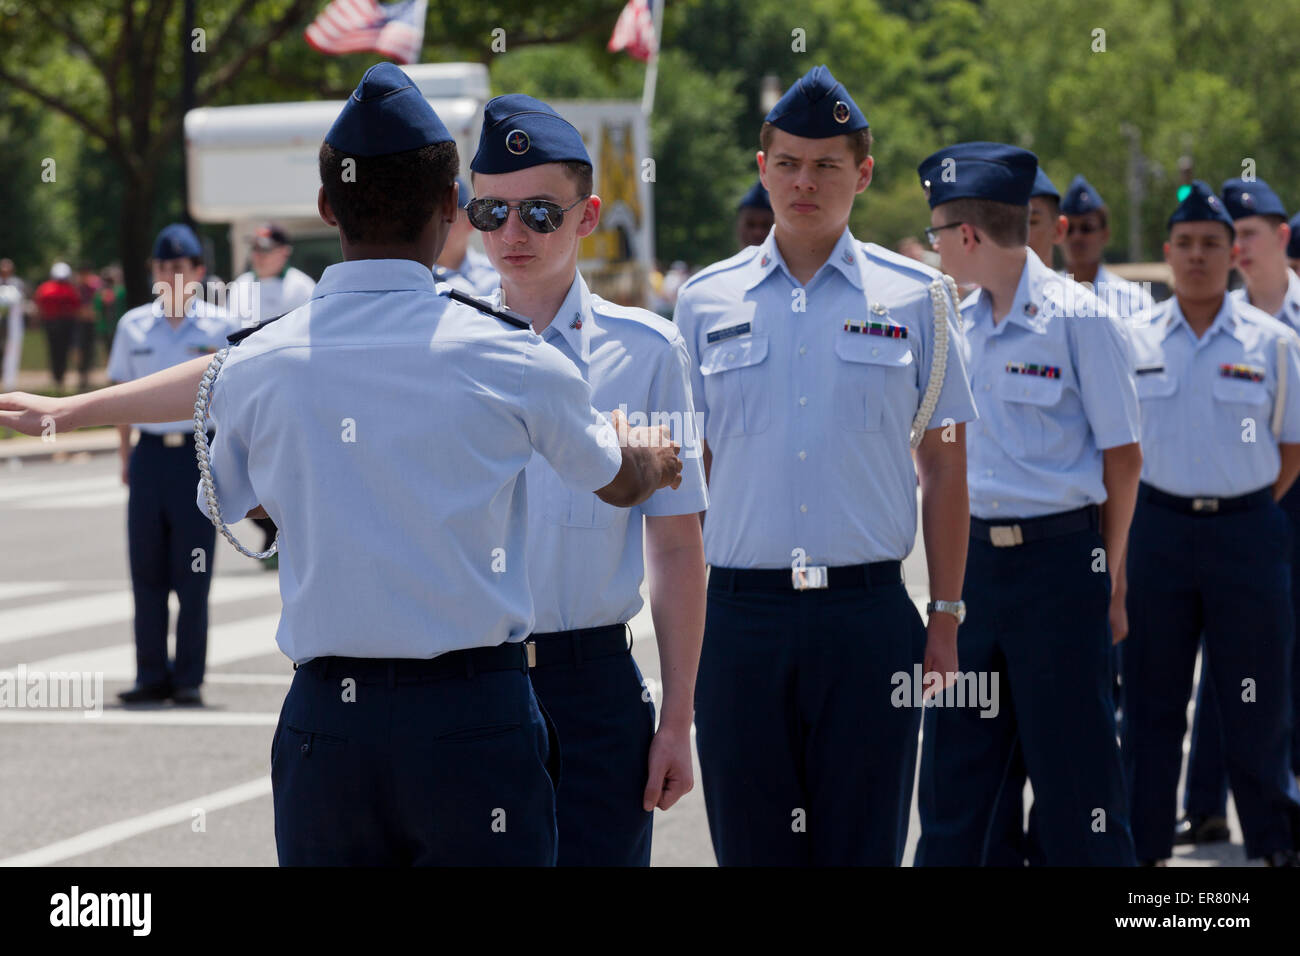 Civil Air Patrol US Air Force Auxiliary cadets at an outdoor event - USA - Stock Image